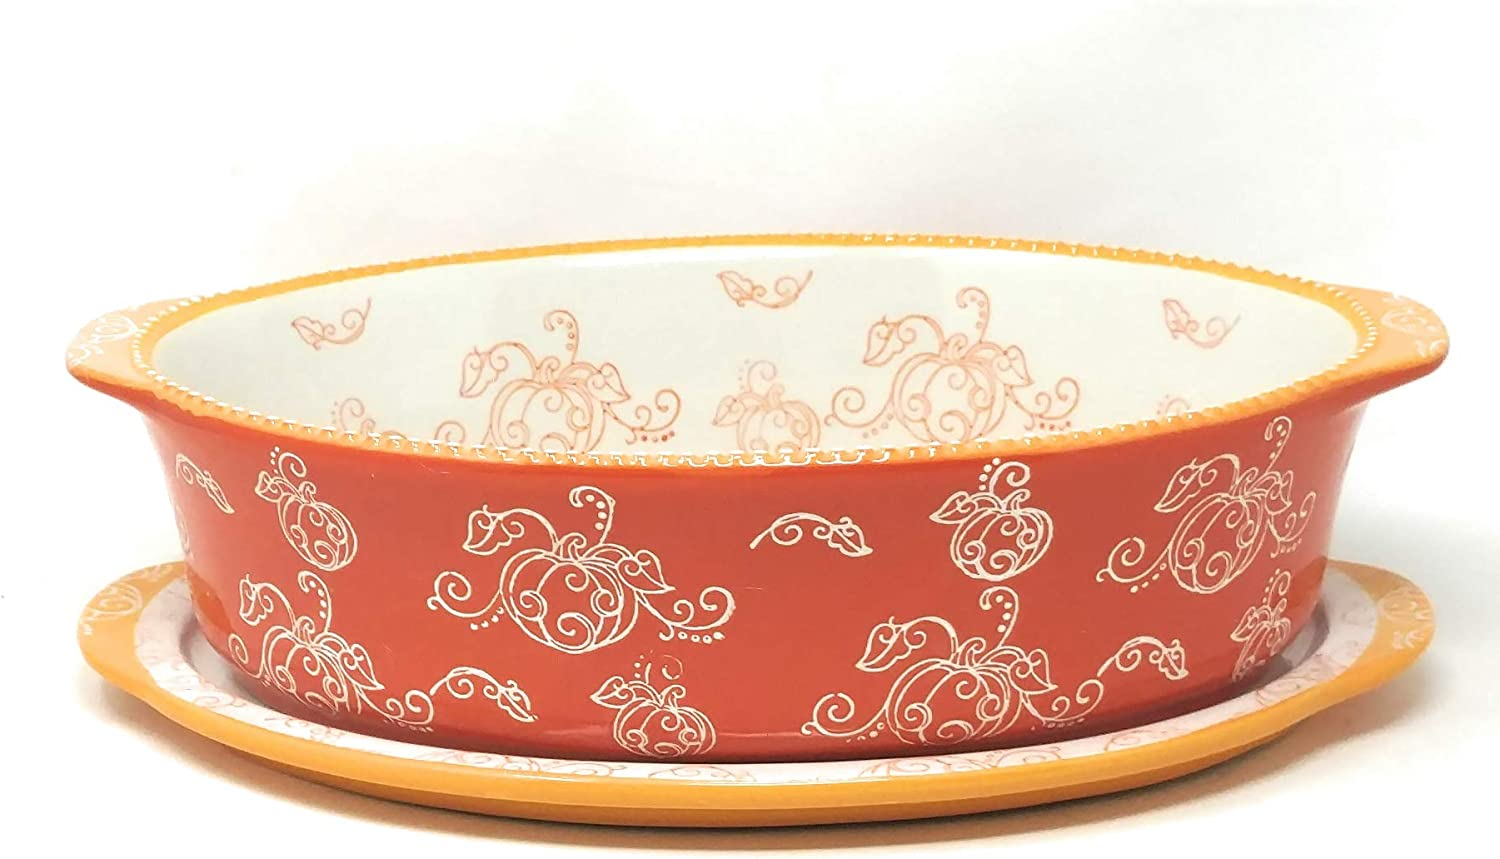 Floral Lace Romance Temp-tations 4 Qt DISH ONLY Baker Casserole or Lasagna Dish 13x9 Replacement No Accessories